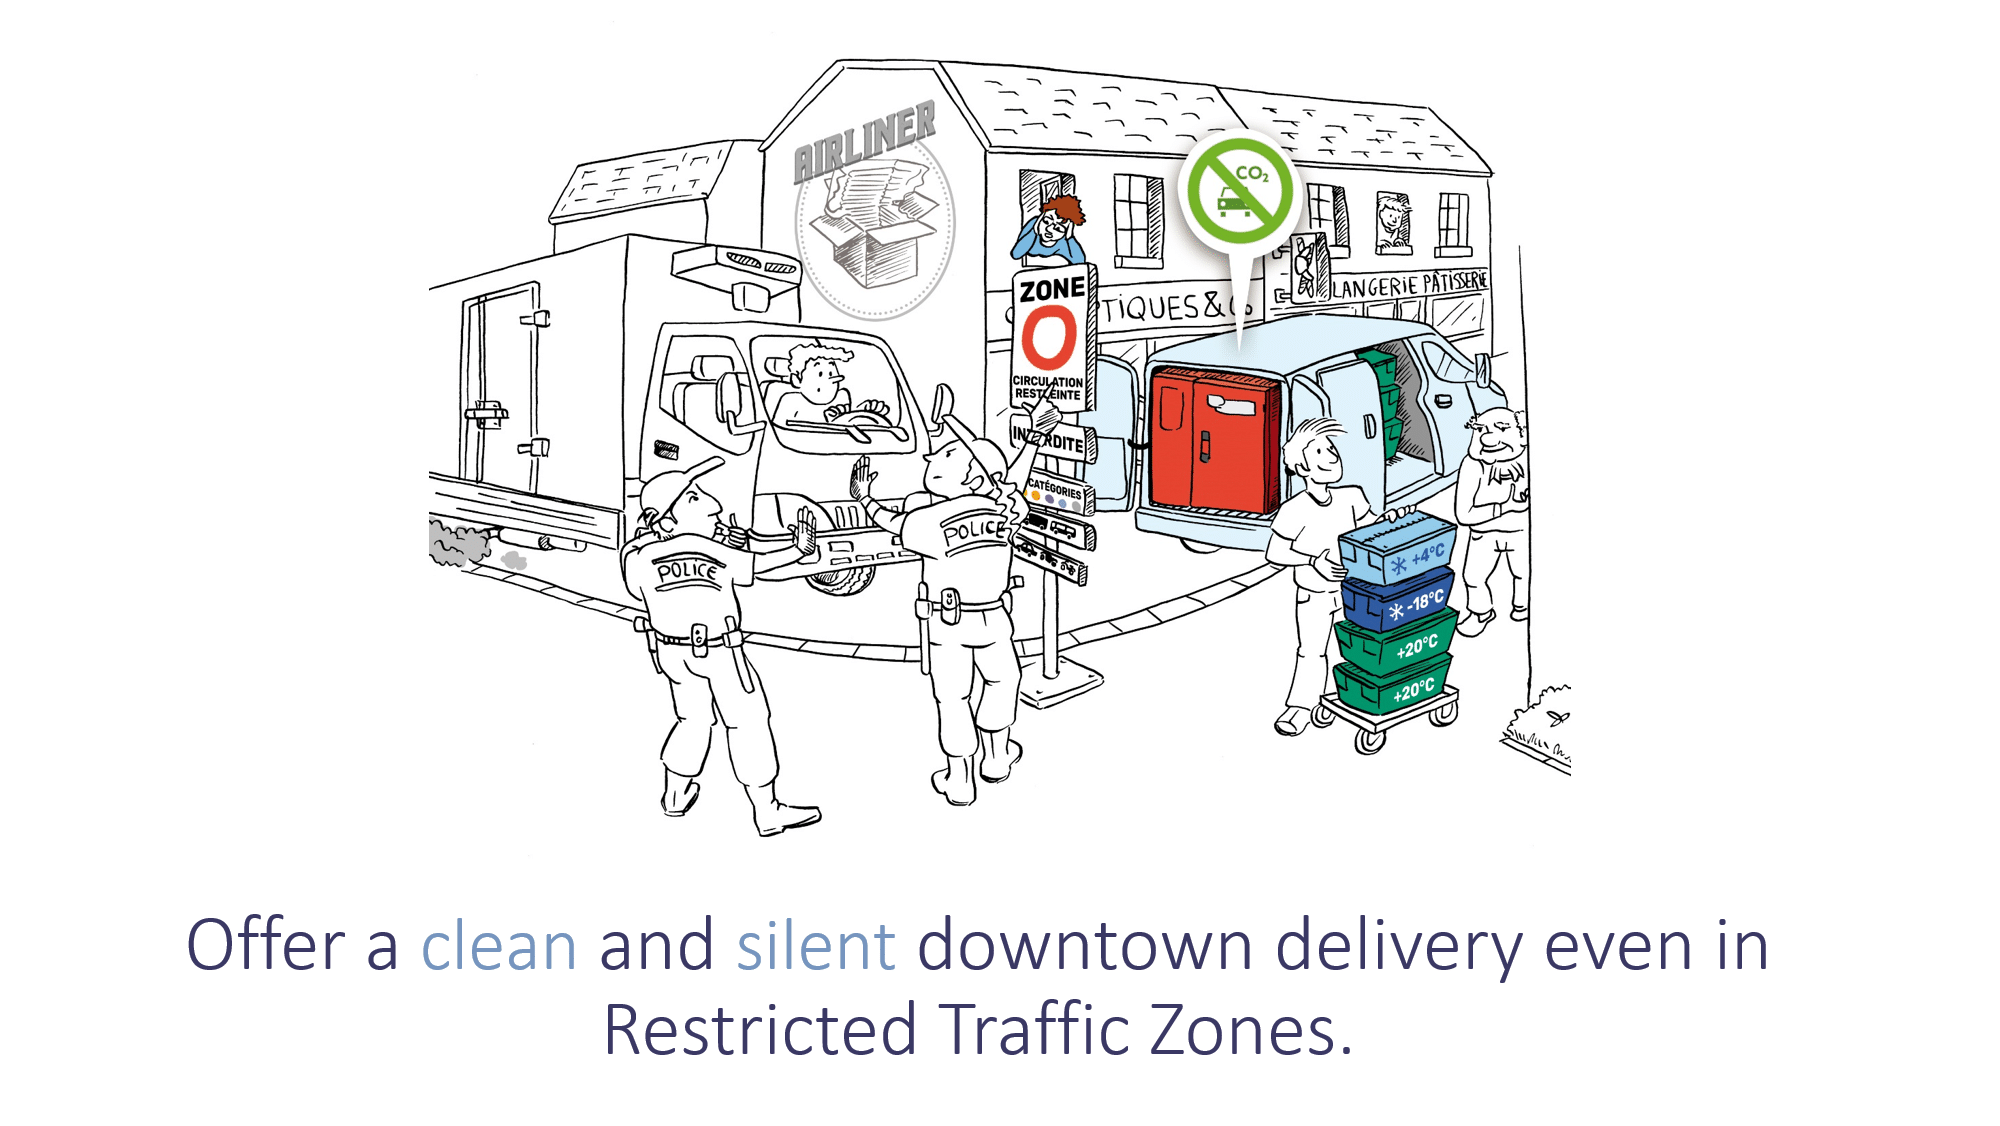 Offer a clean and silent urban delivery with insulated container CarryTemp (ATP certification) associated with cargo bikes, scooters or trailer bikes.